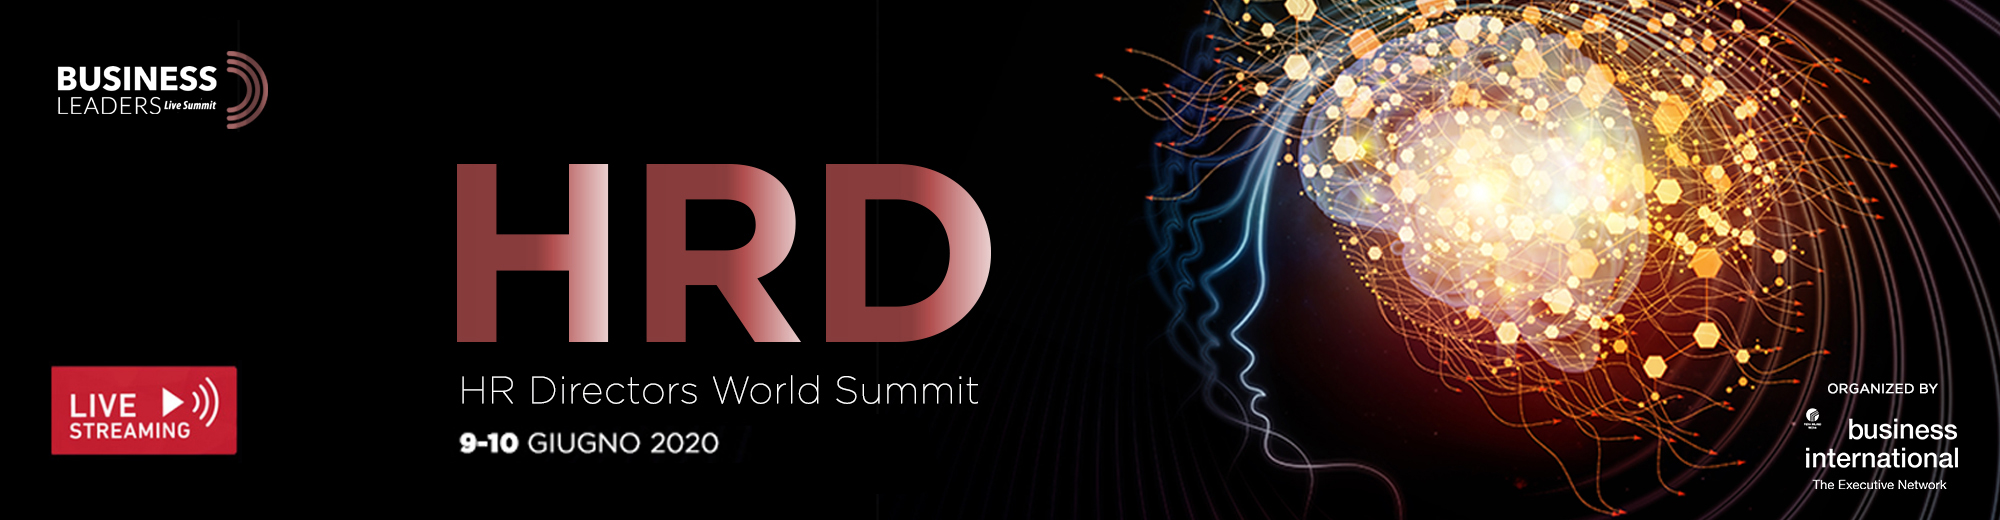 HR Directors World Summit